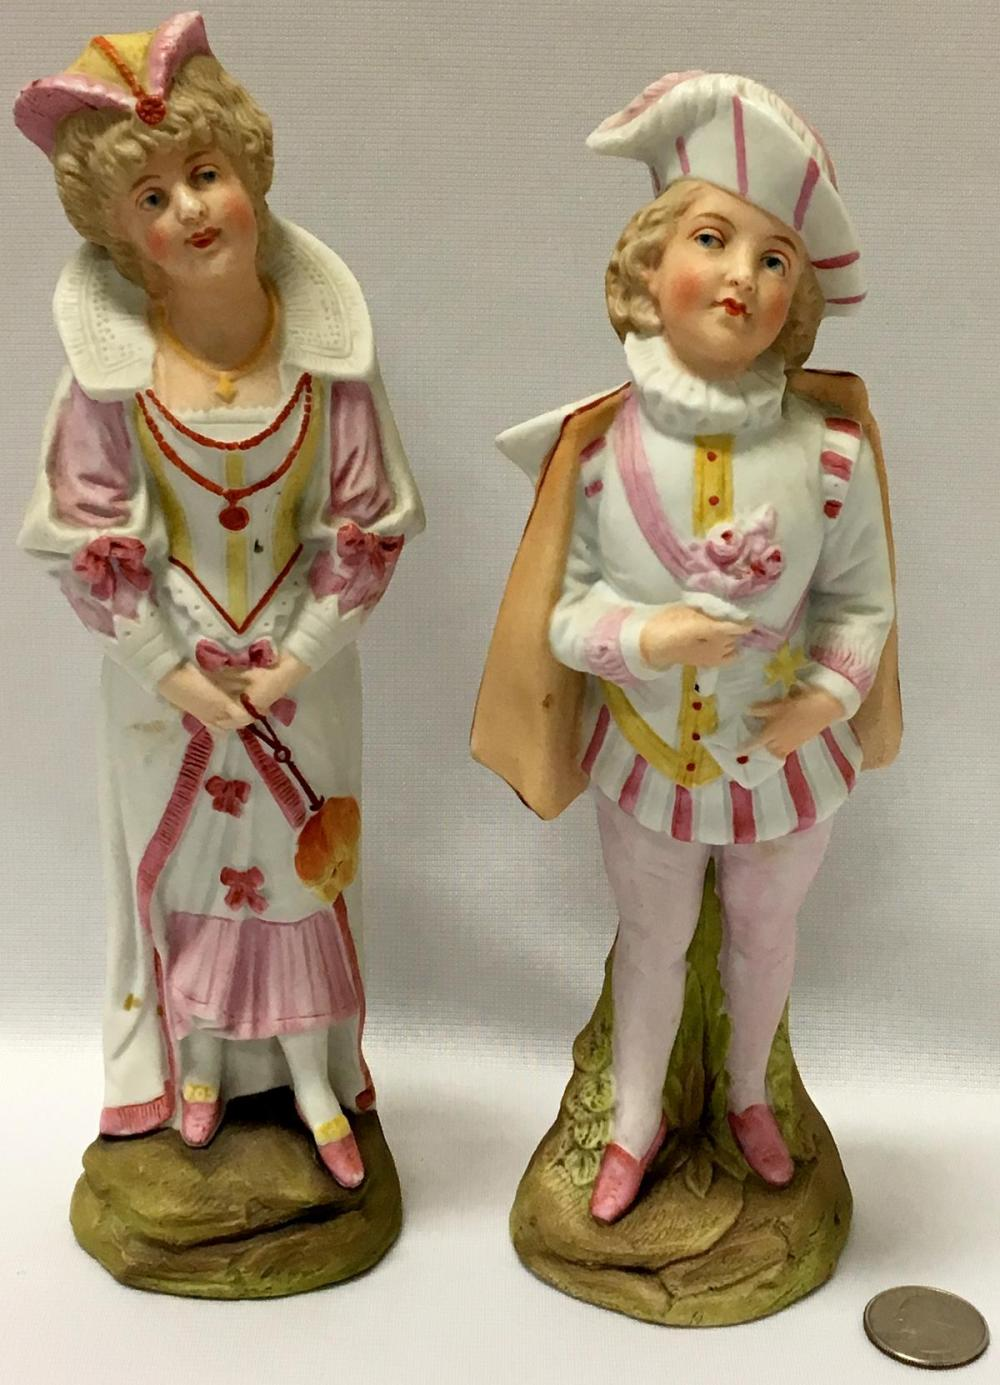 Antique 19th Century Victorian Girl & Boy Bisque Figurines by Gebruder Heubach